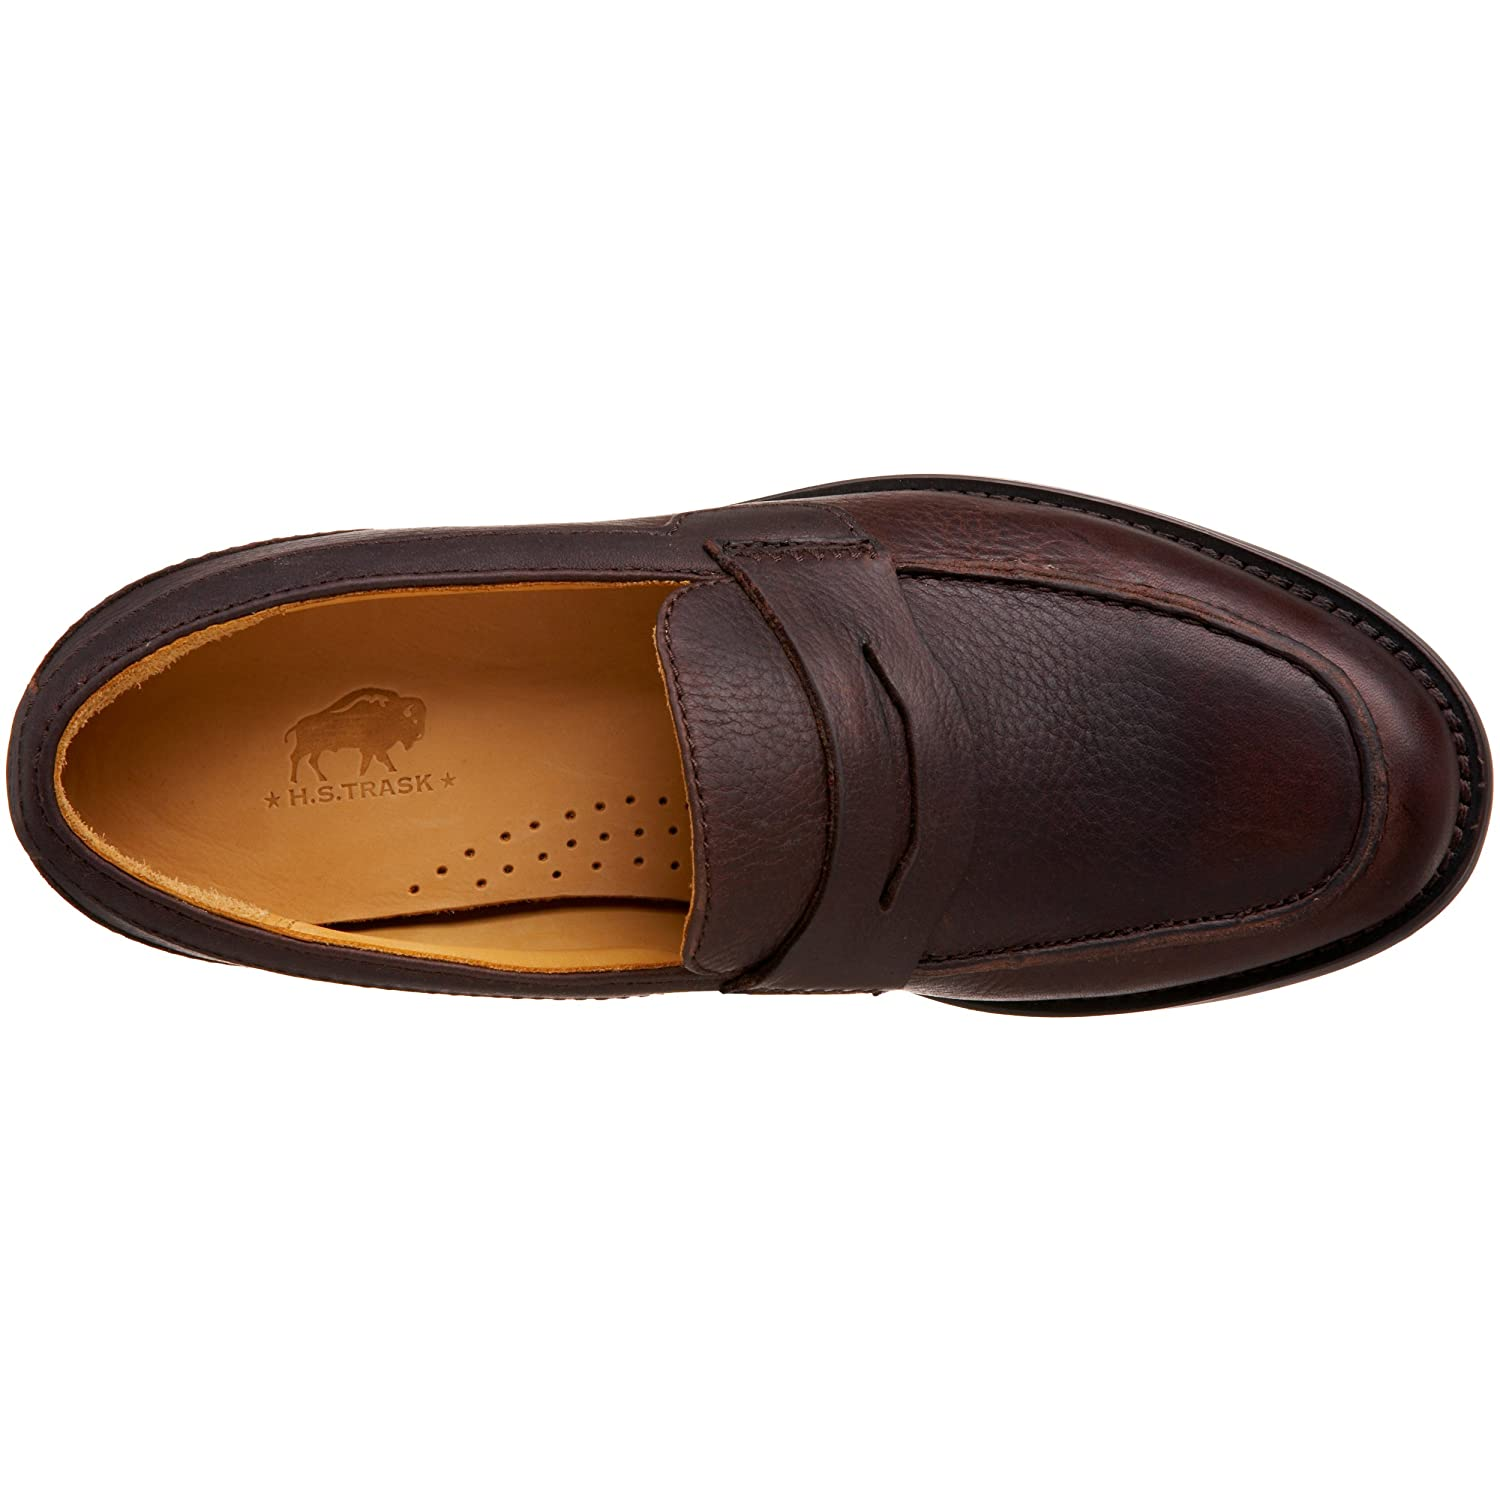 Trask Mens Gibson Falls Penny Loafer H.S